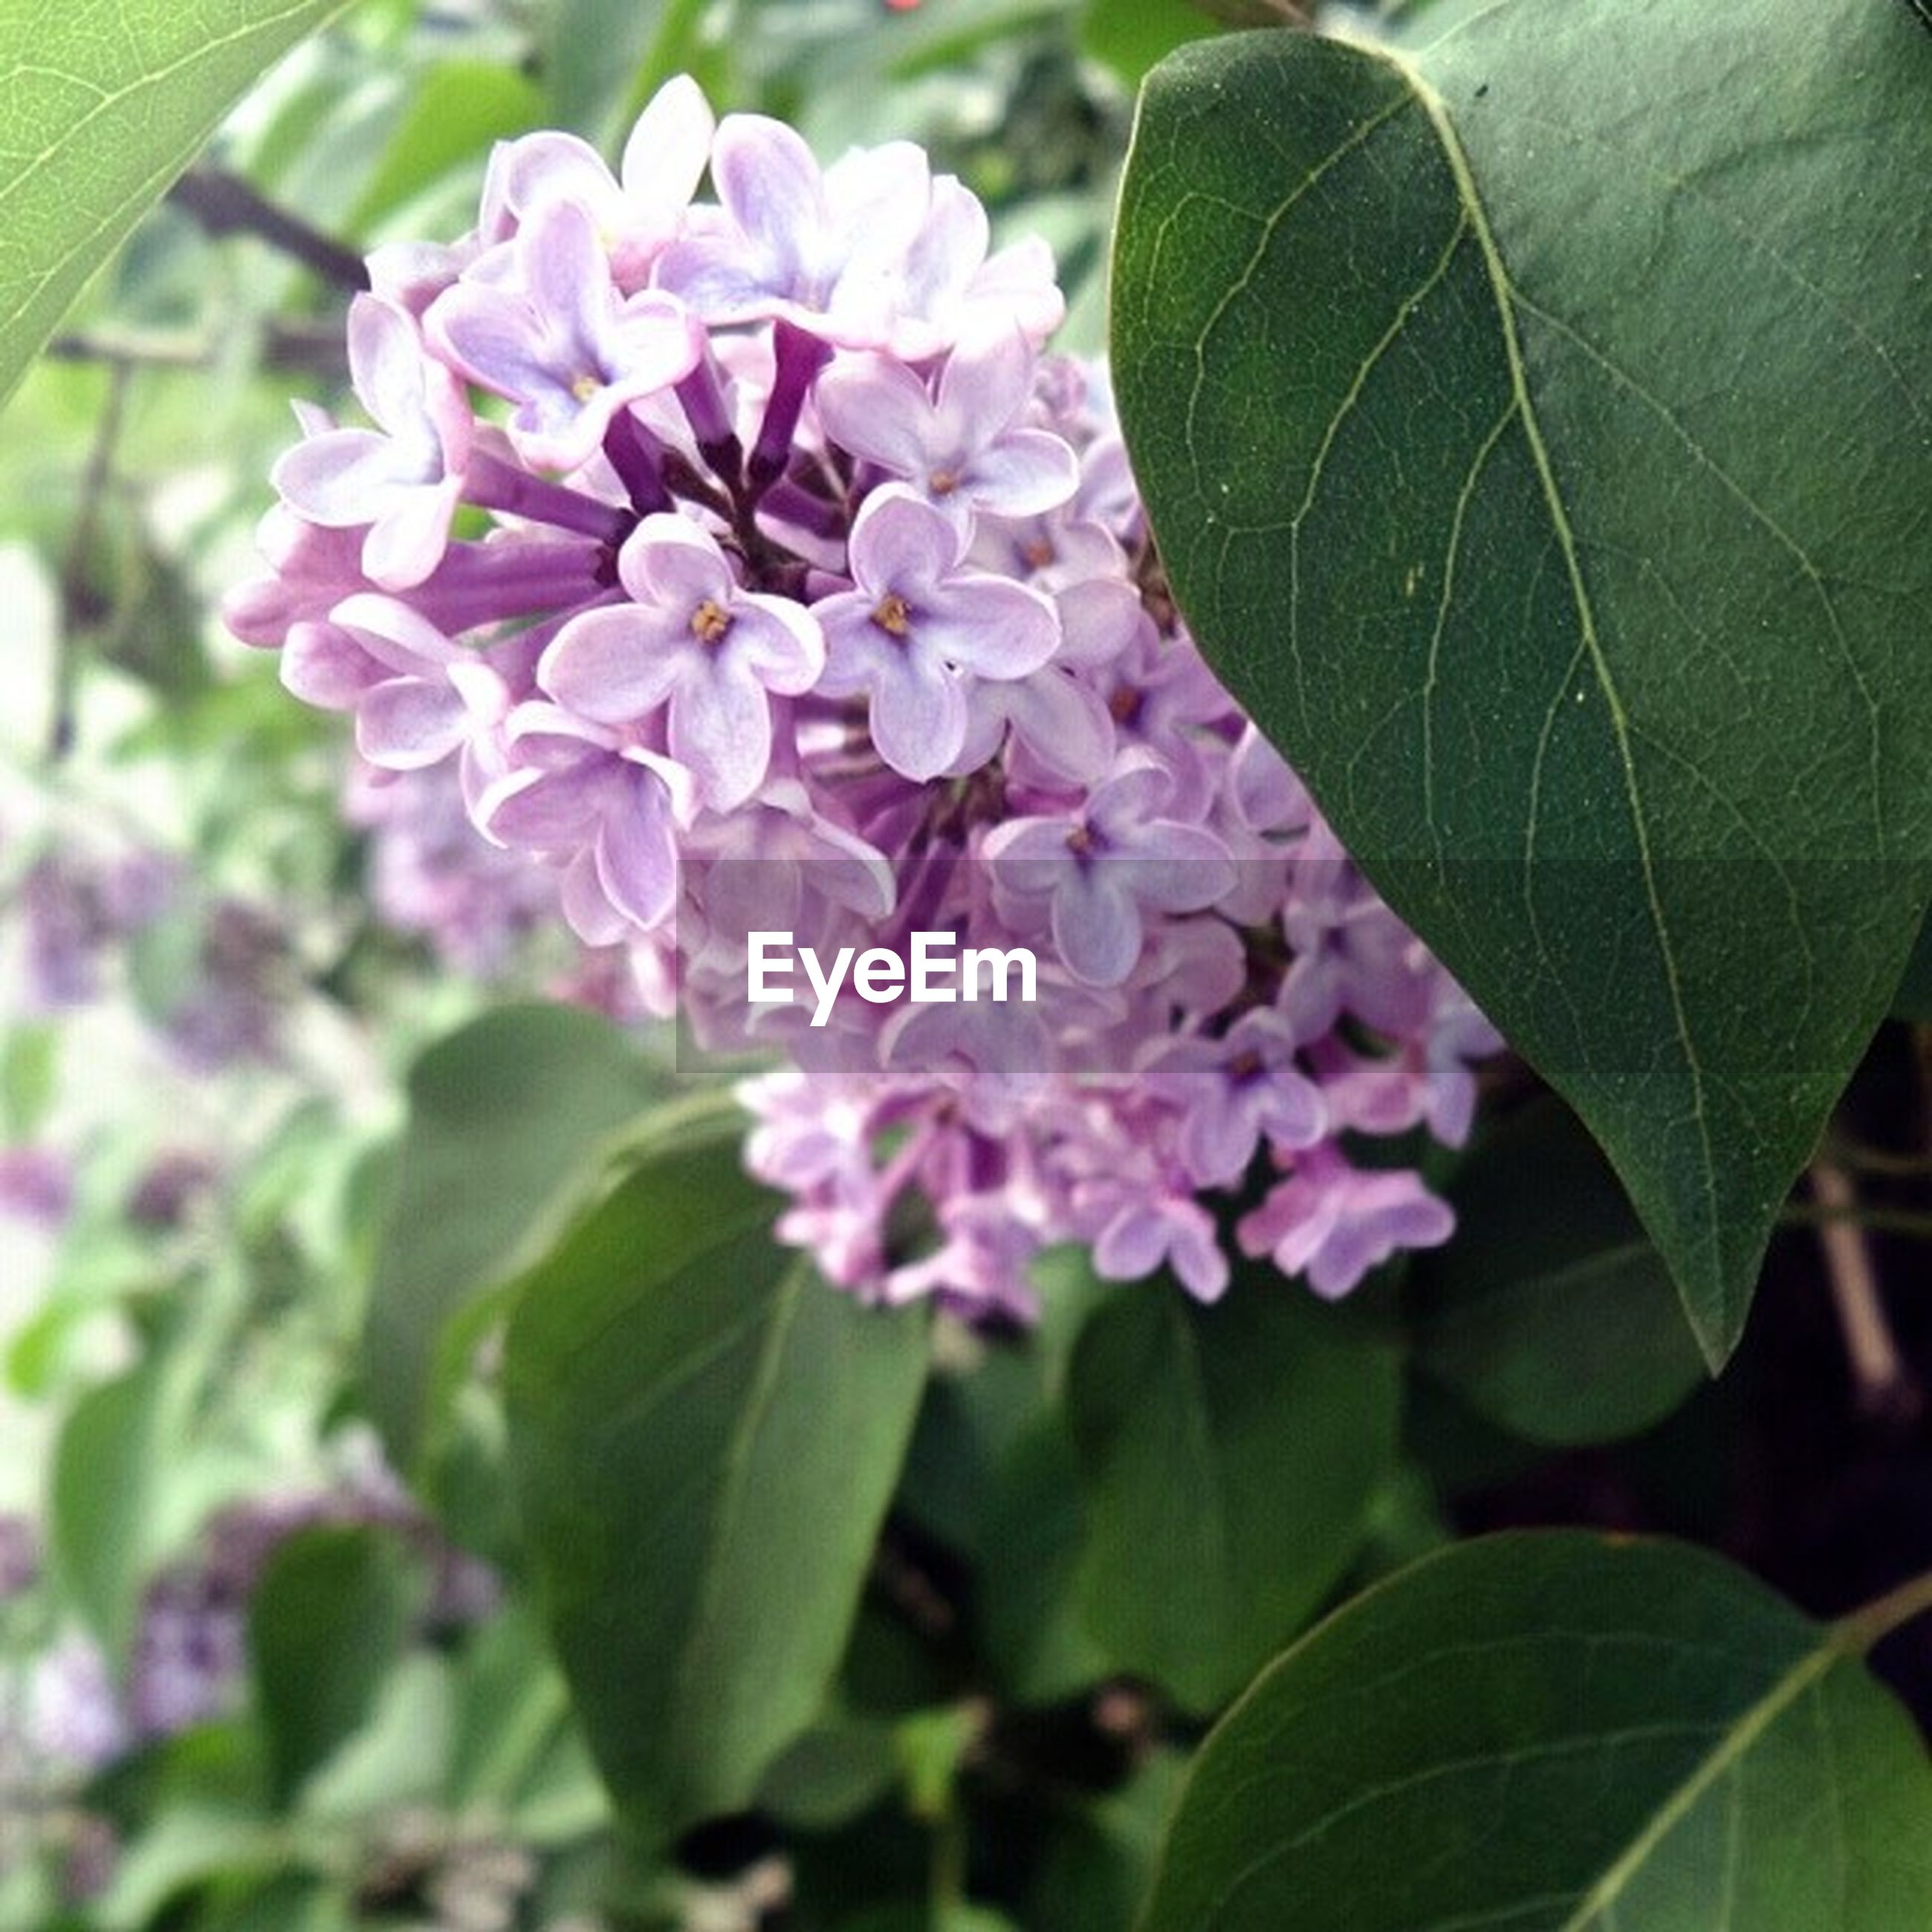 flower, freshness, growth, leaf, fragility, petal, beauty in nature, flower head, close-up, plant, nature, blooming, focus on foreground, green color, pink color, in bloom, blossom, high angle view, purple, outdoors